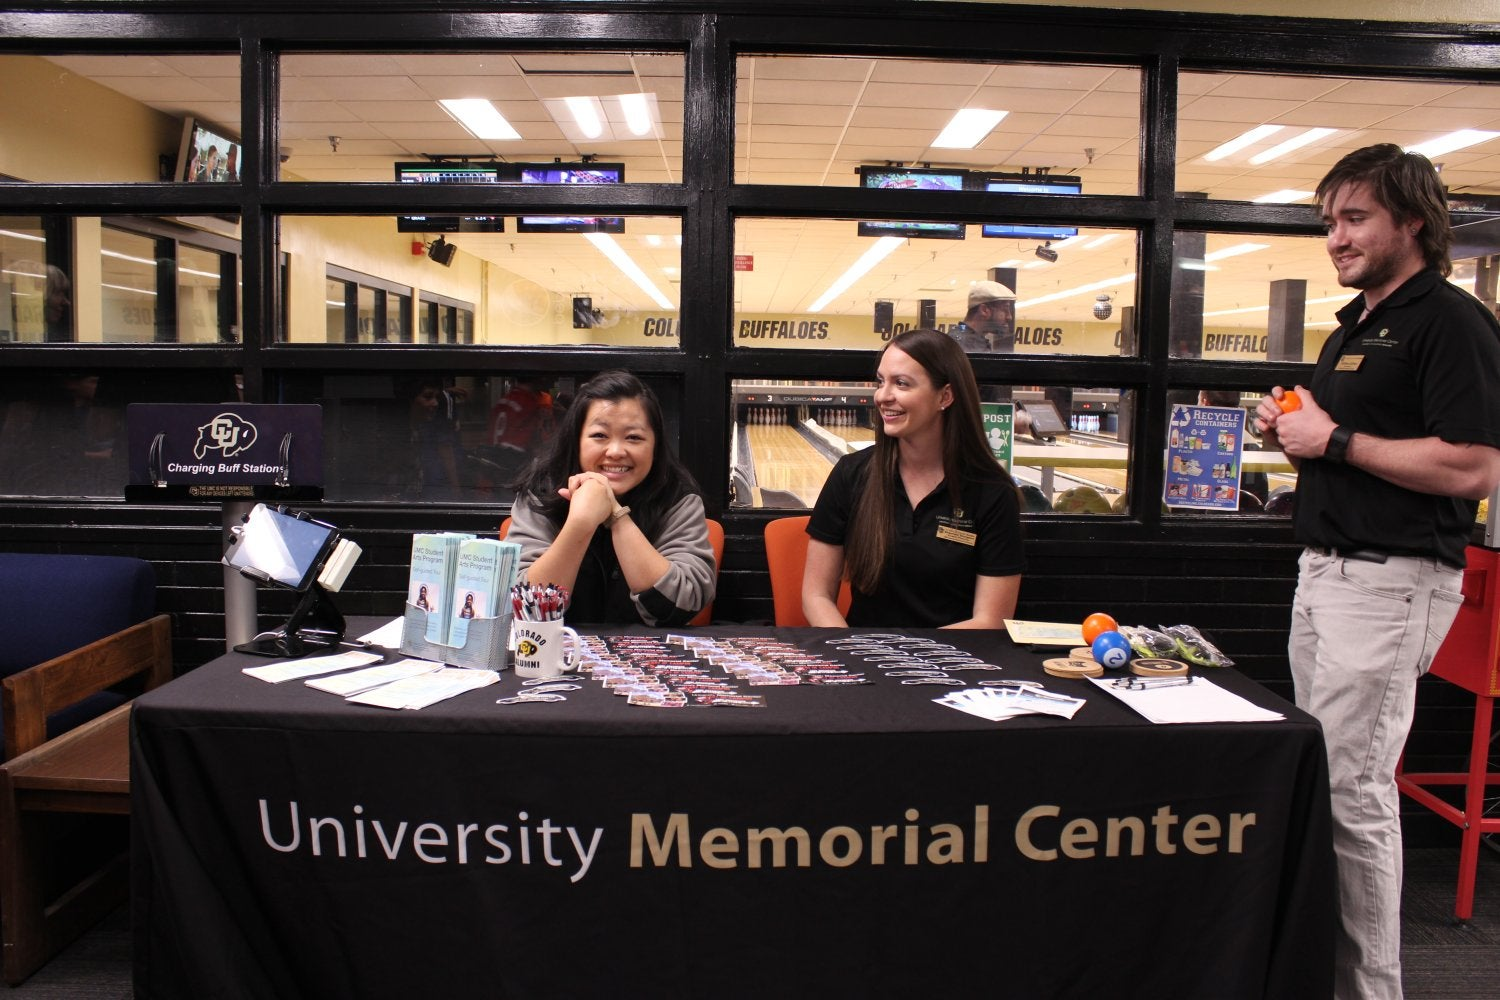 UMC staff members greet guests from the Welcome Table